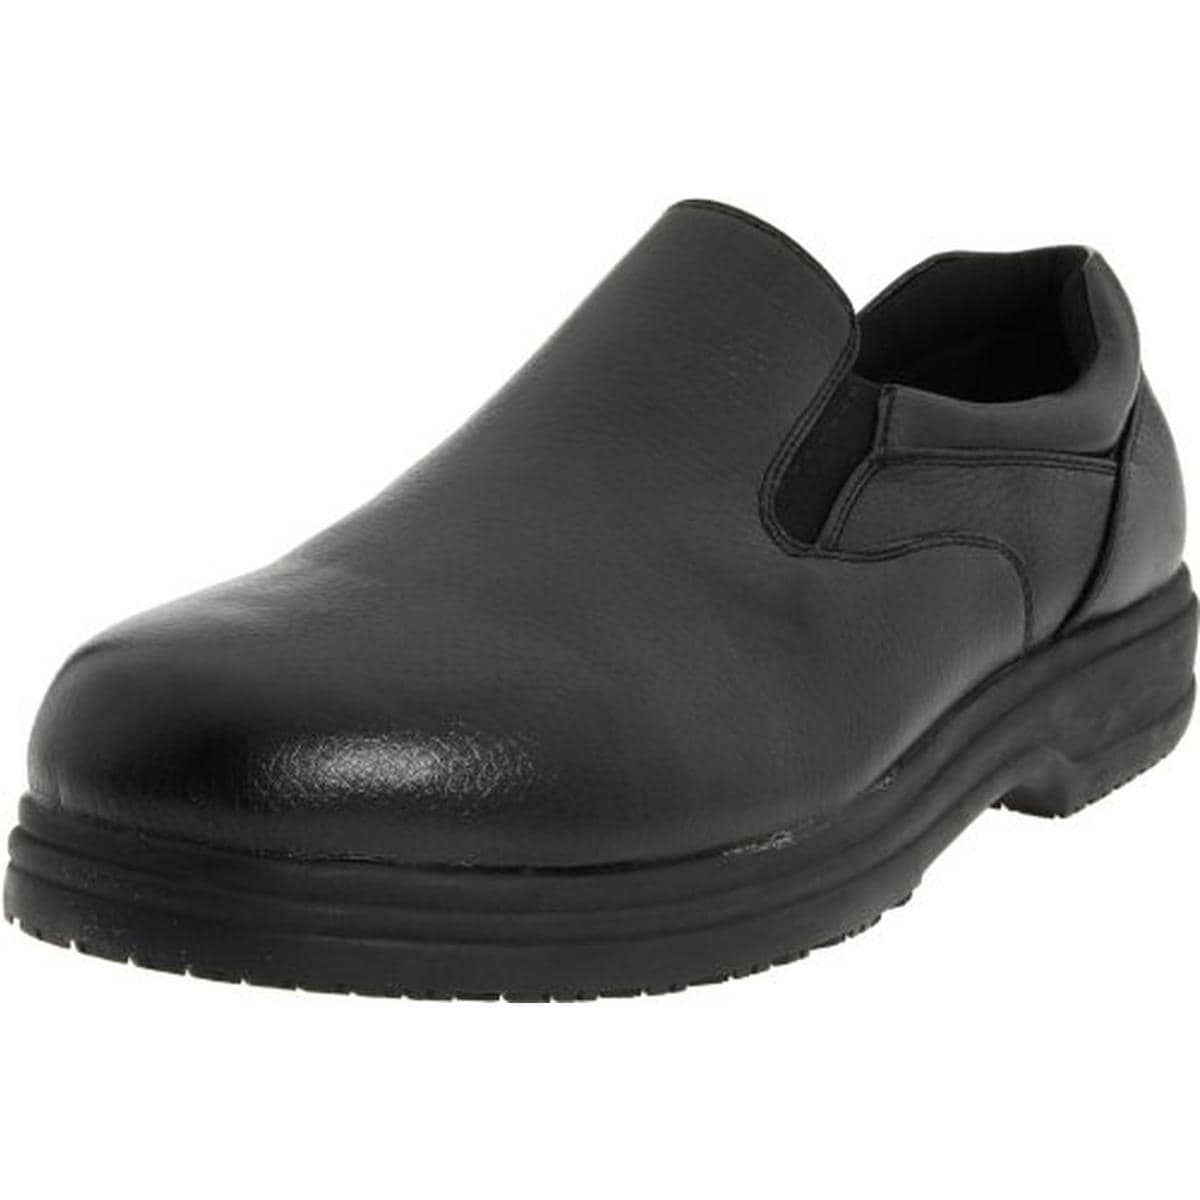 Work Shoes Leather Slip Resistant